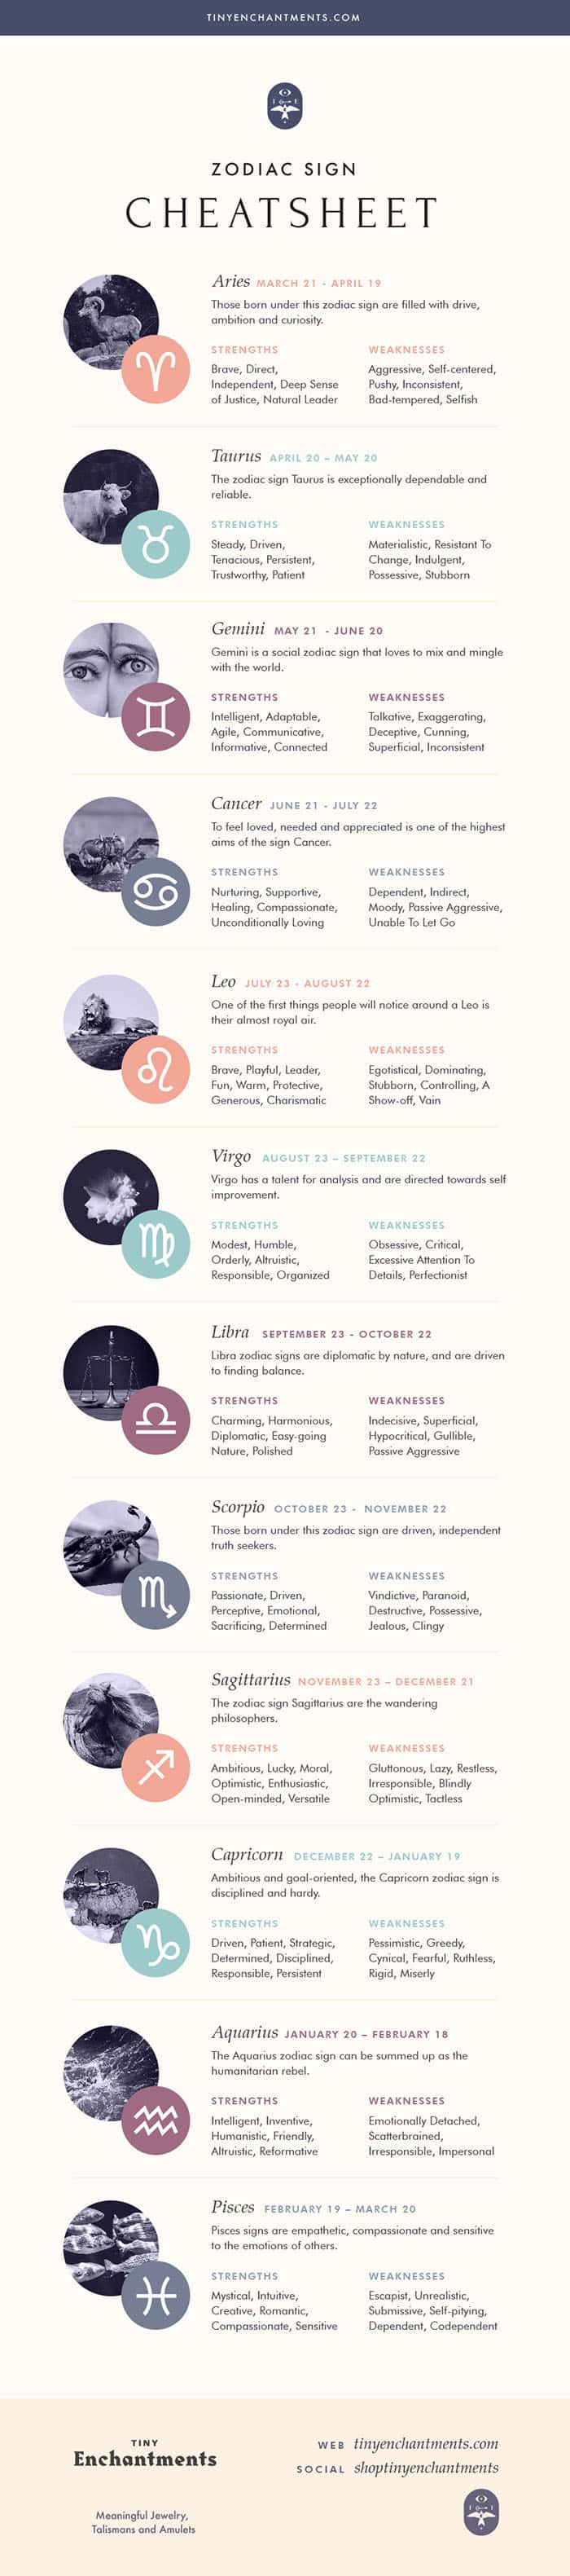 The 12 Zodiac Signs List Infographic